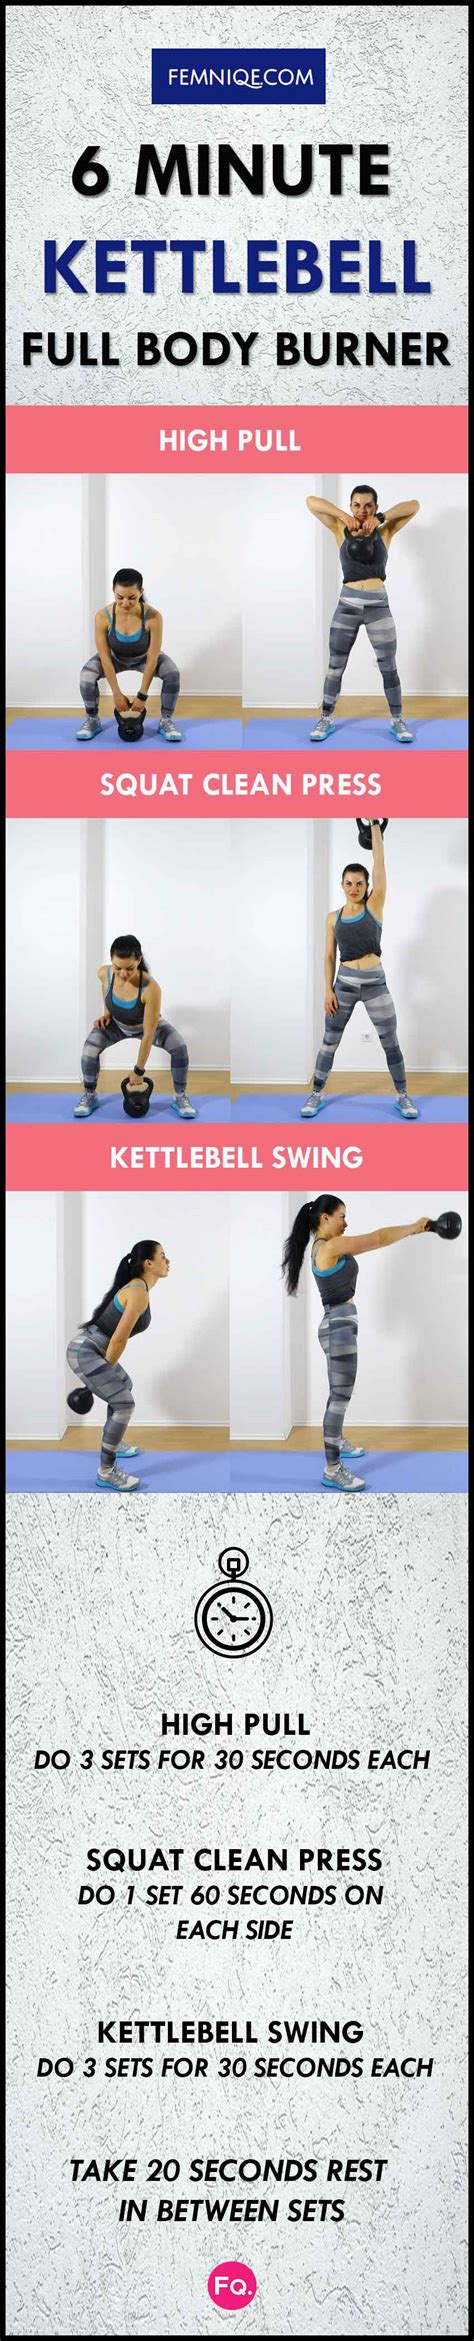 kettlebell workout routine minute chart frequency body fat femniqe burn